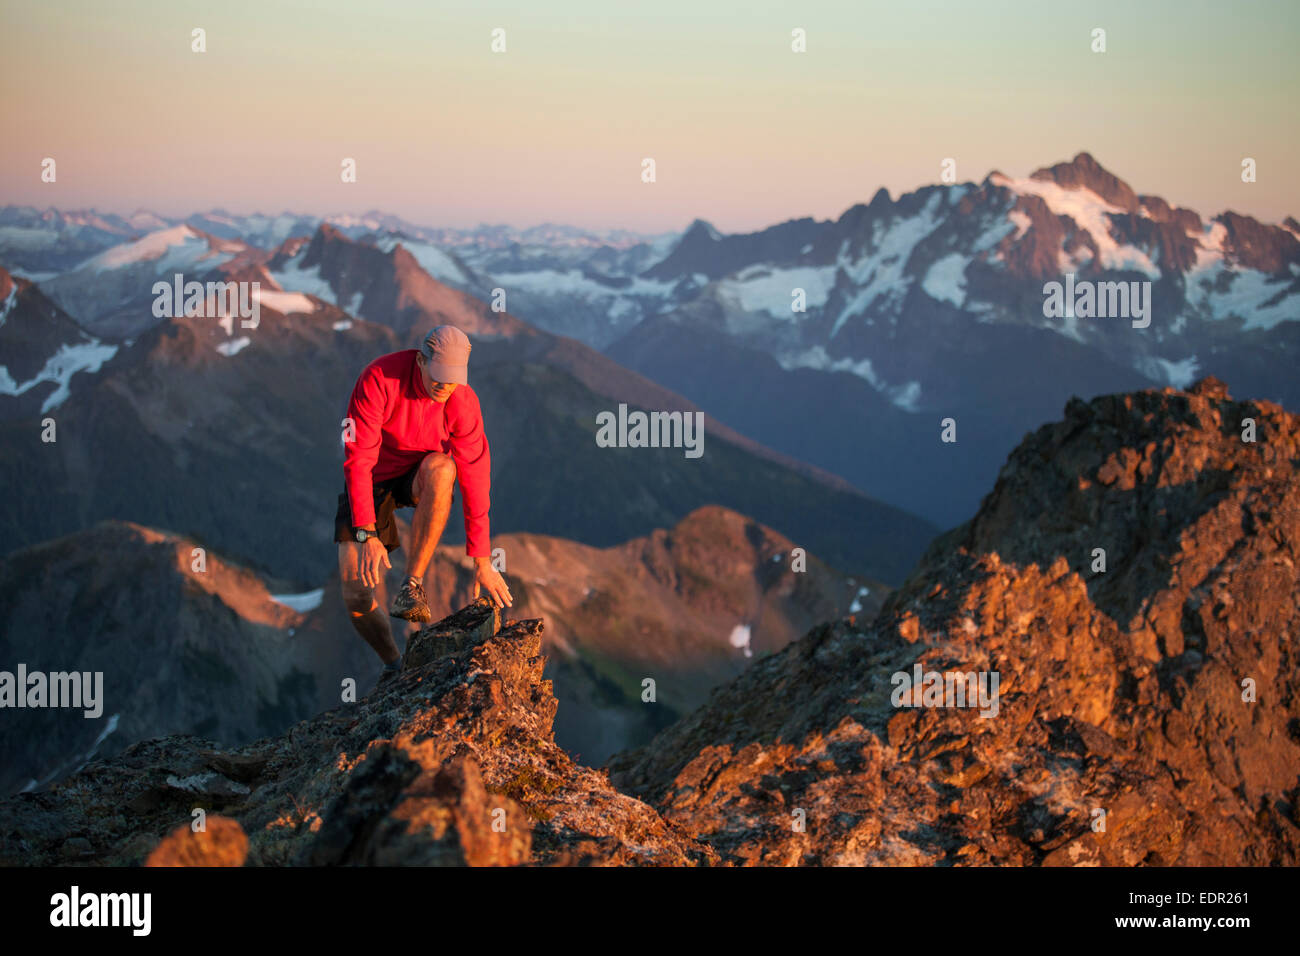 Scrambling in North Cascades National Park - Stock Image